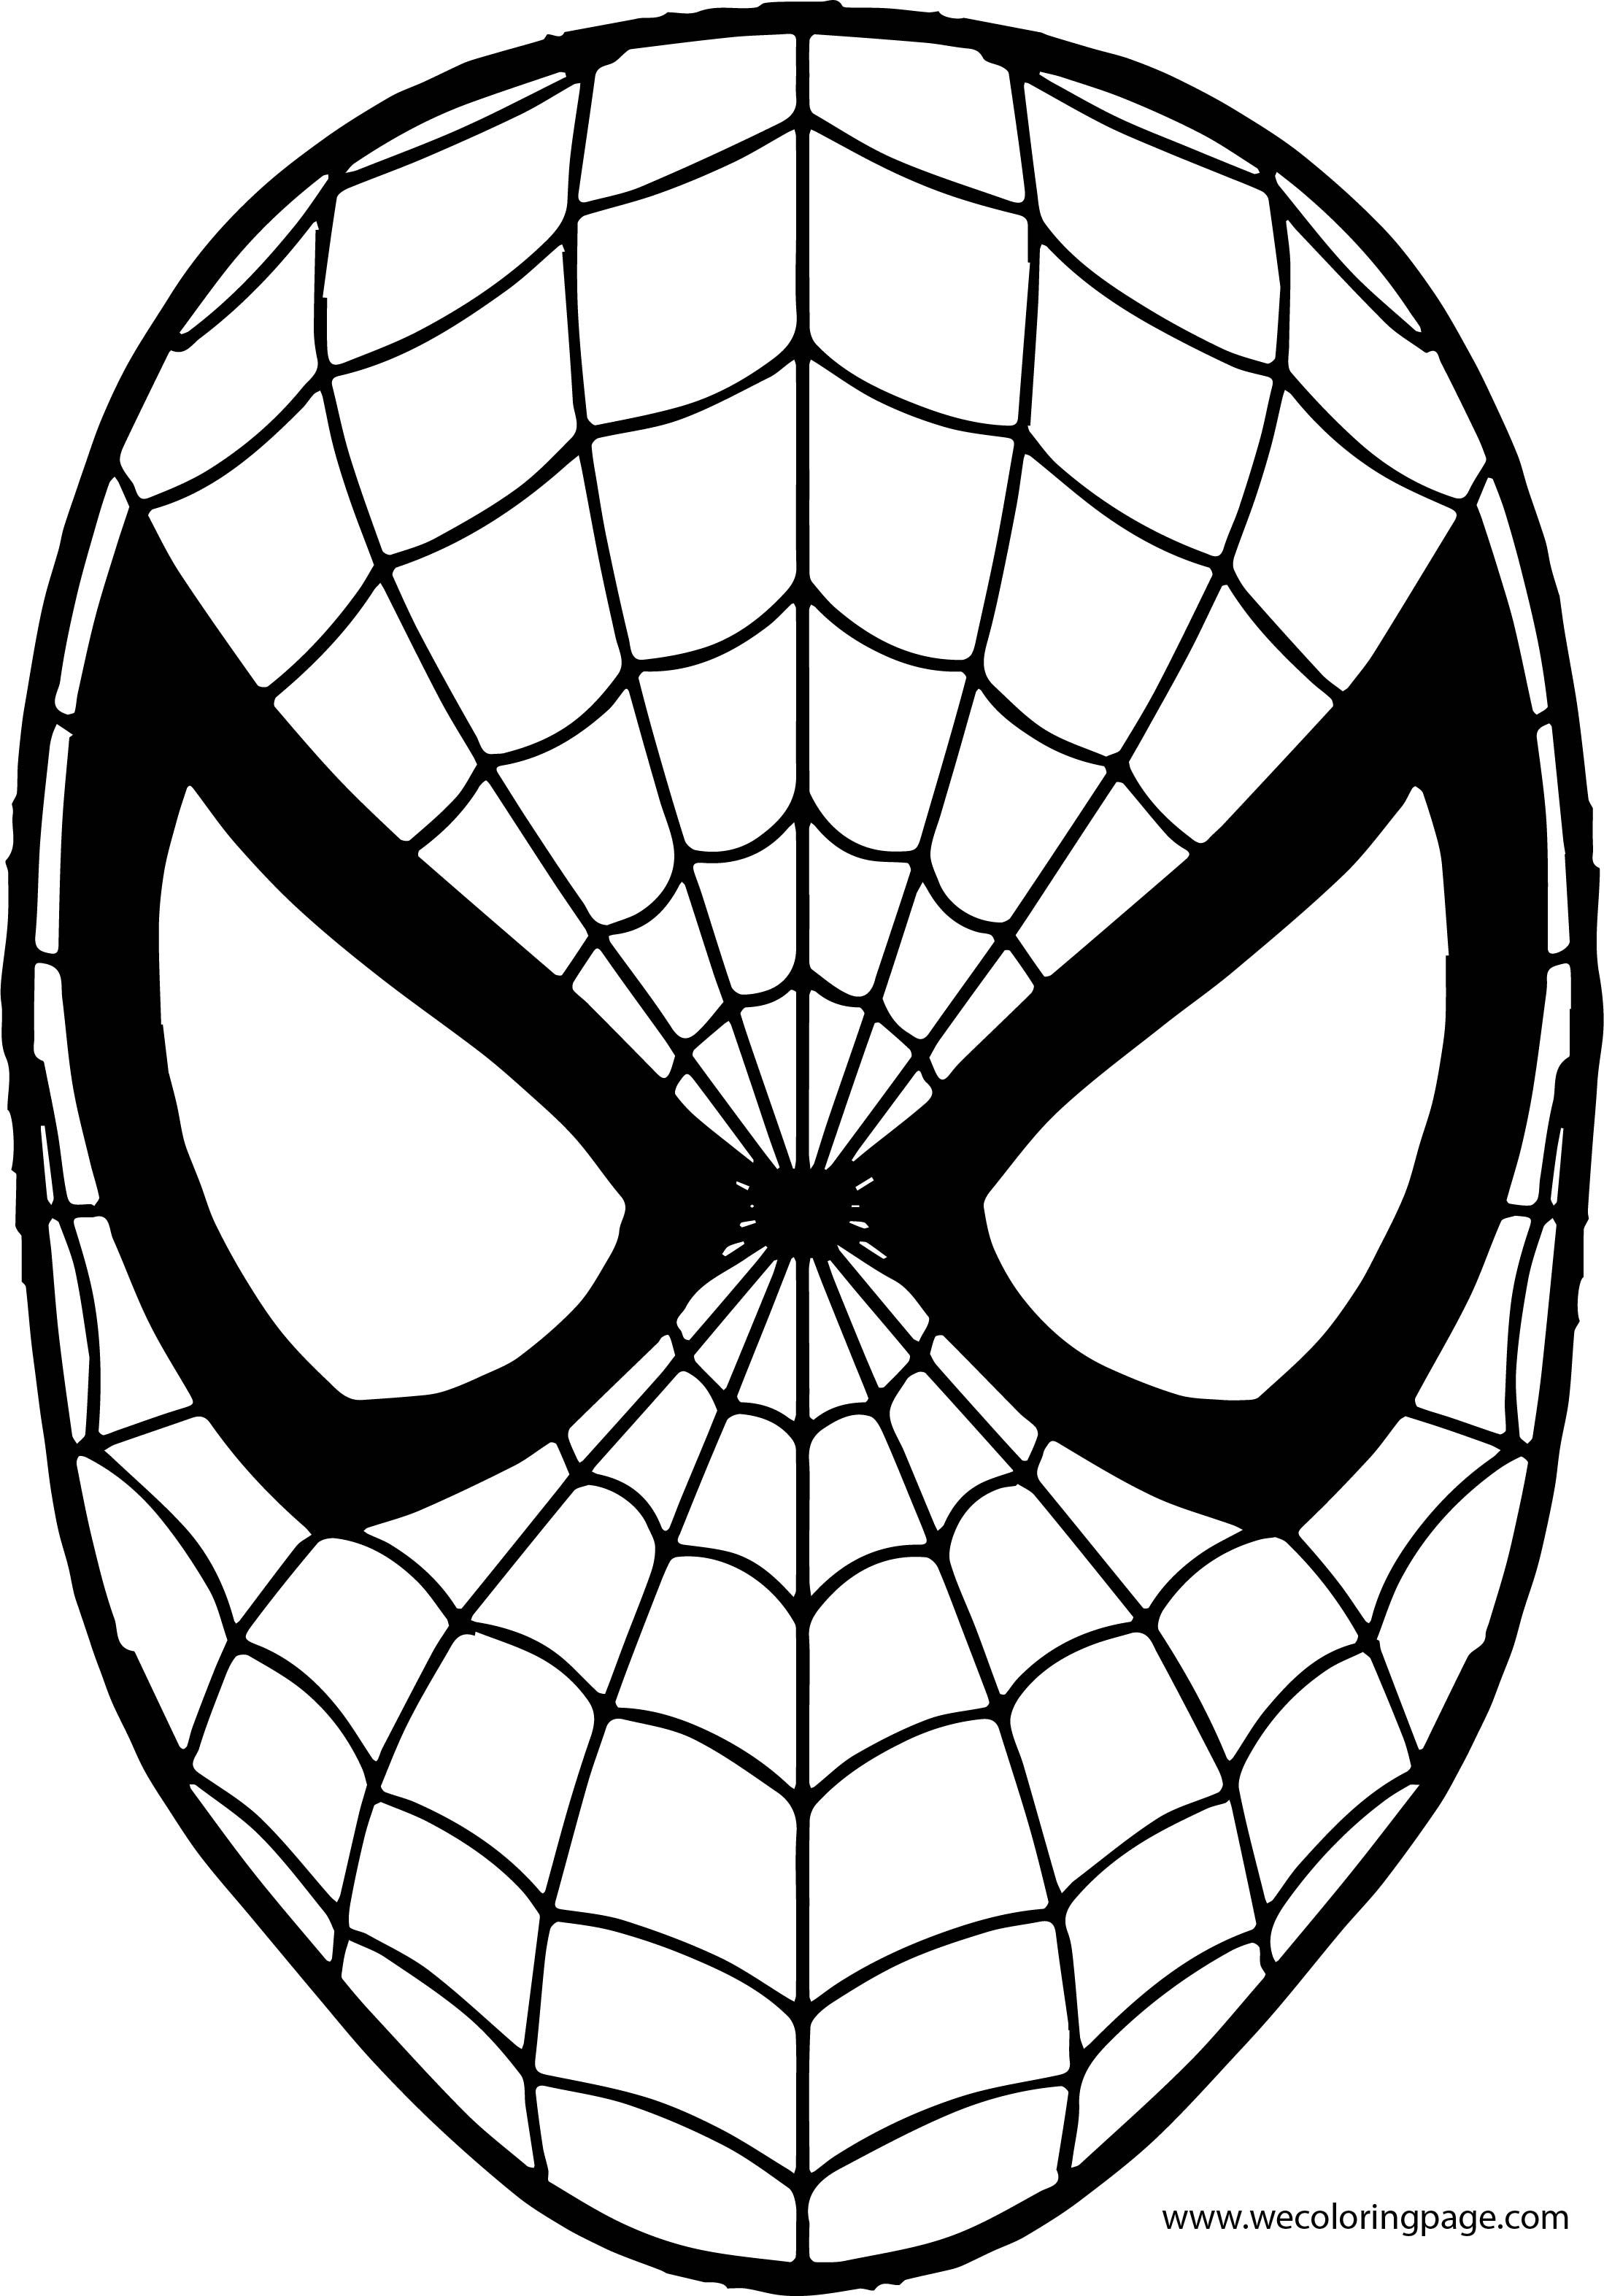 Spiderman Mask Coloring Page  Wecoloringpage.com in 4